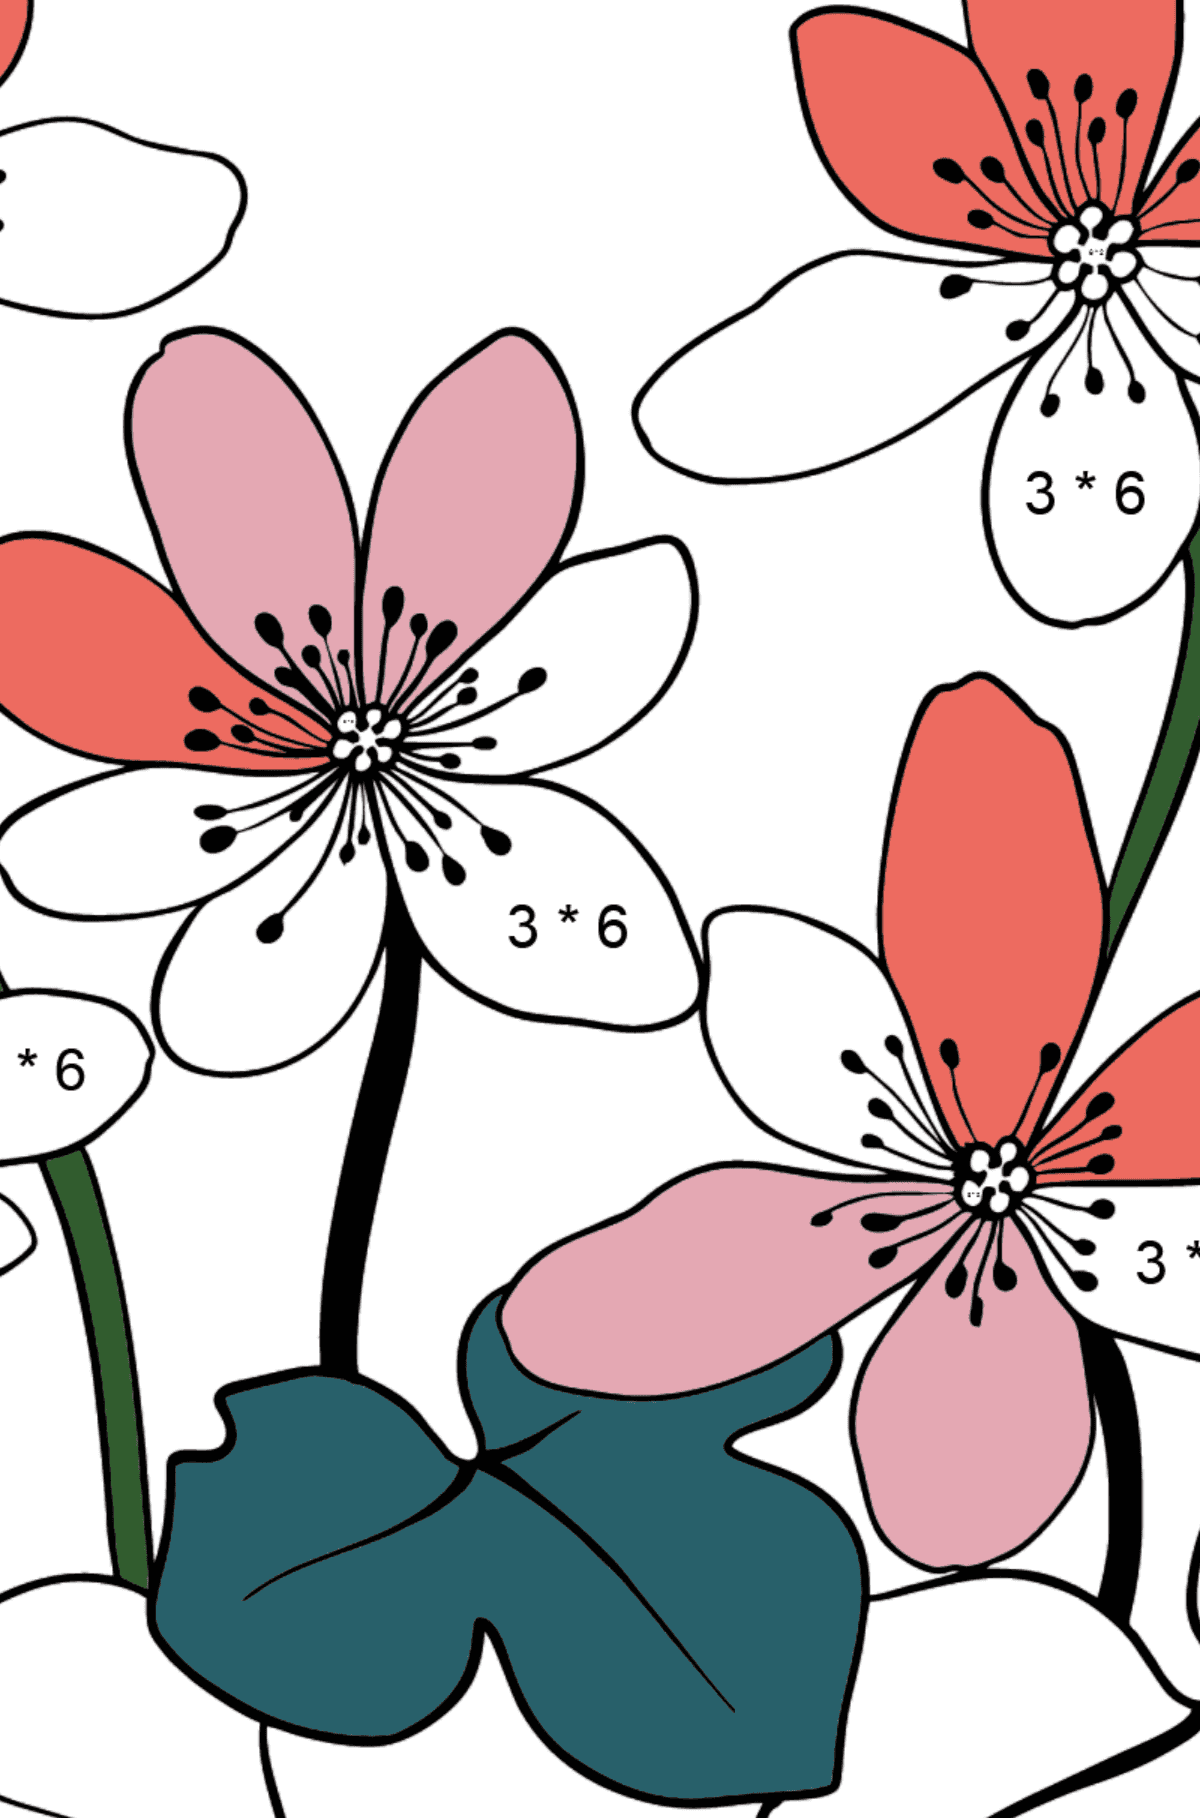 Flower Coloring Page - Hepatica - Math Coloring - Multiplication for Kids